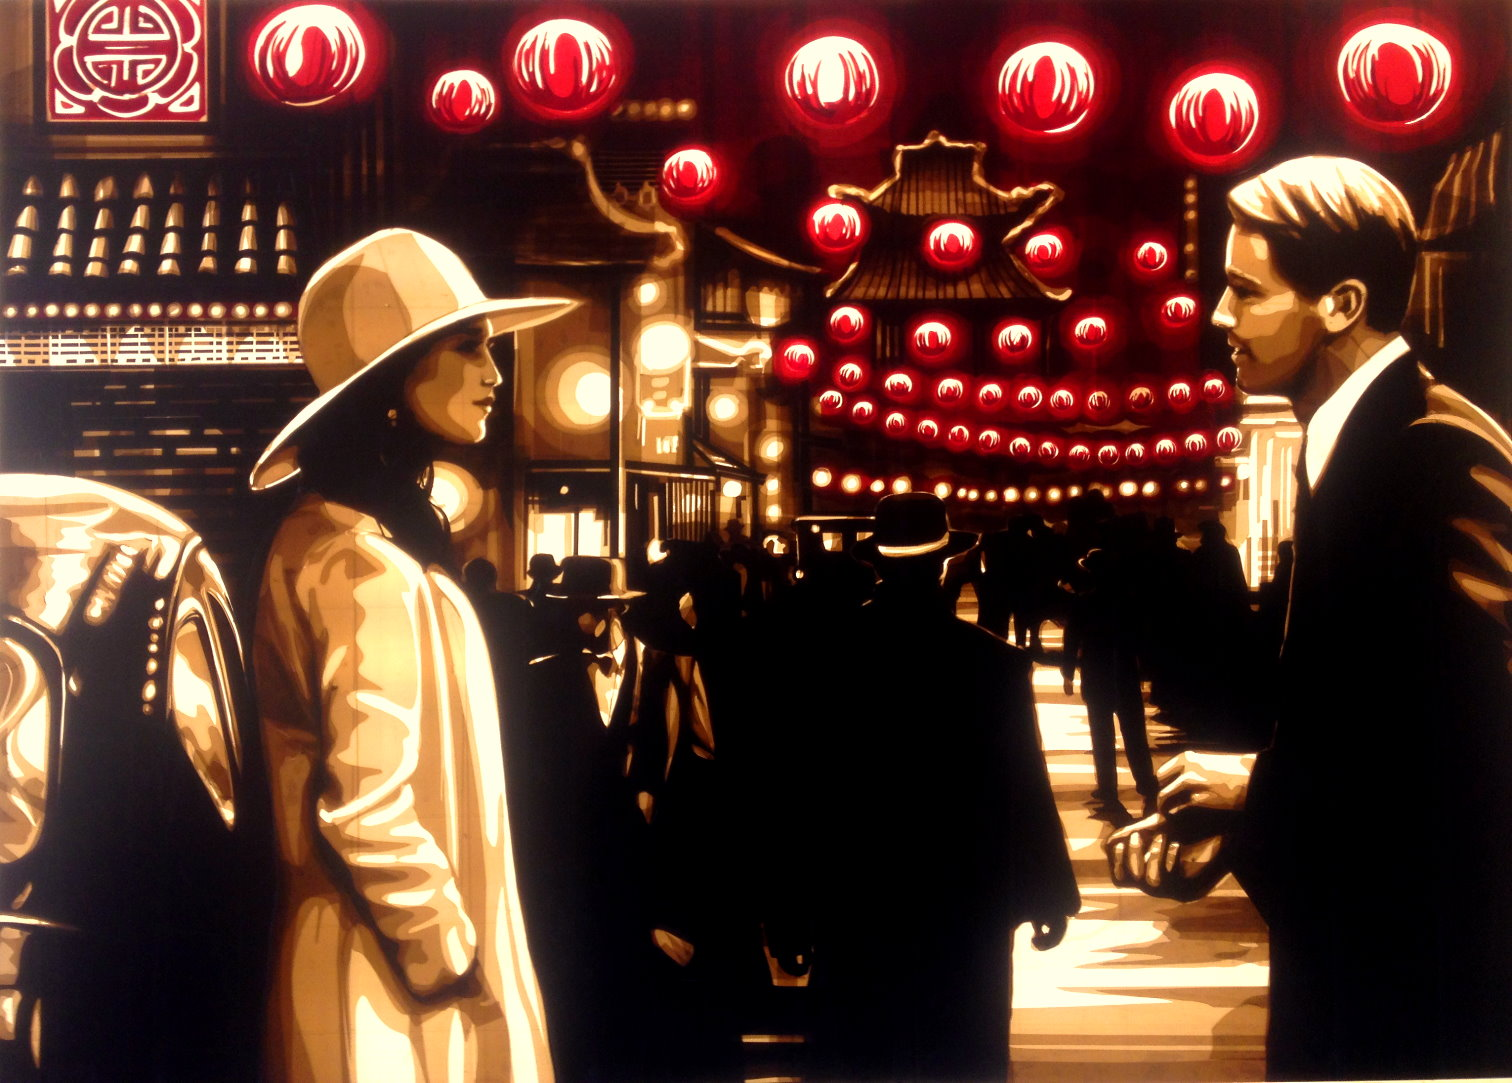 Artwork made with packing tape by Max Zorn, depicting a scene in China Town